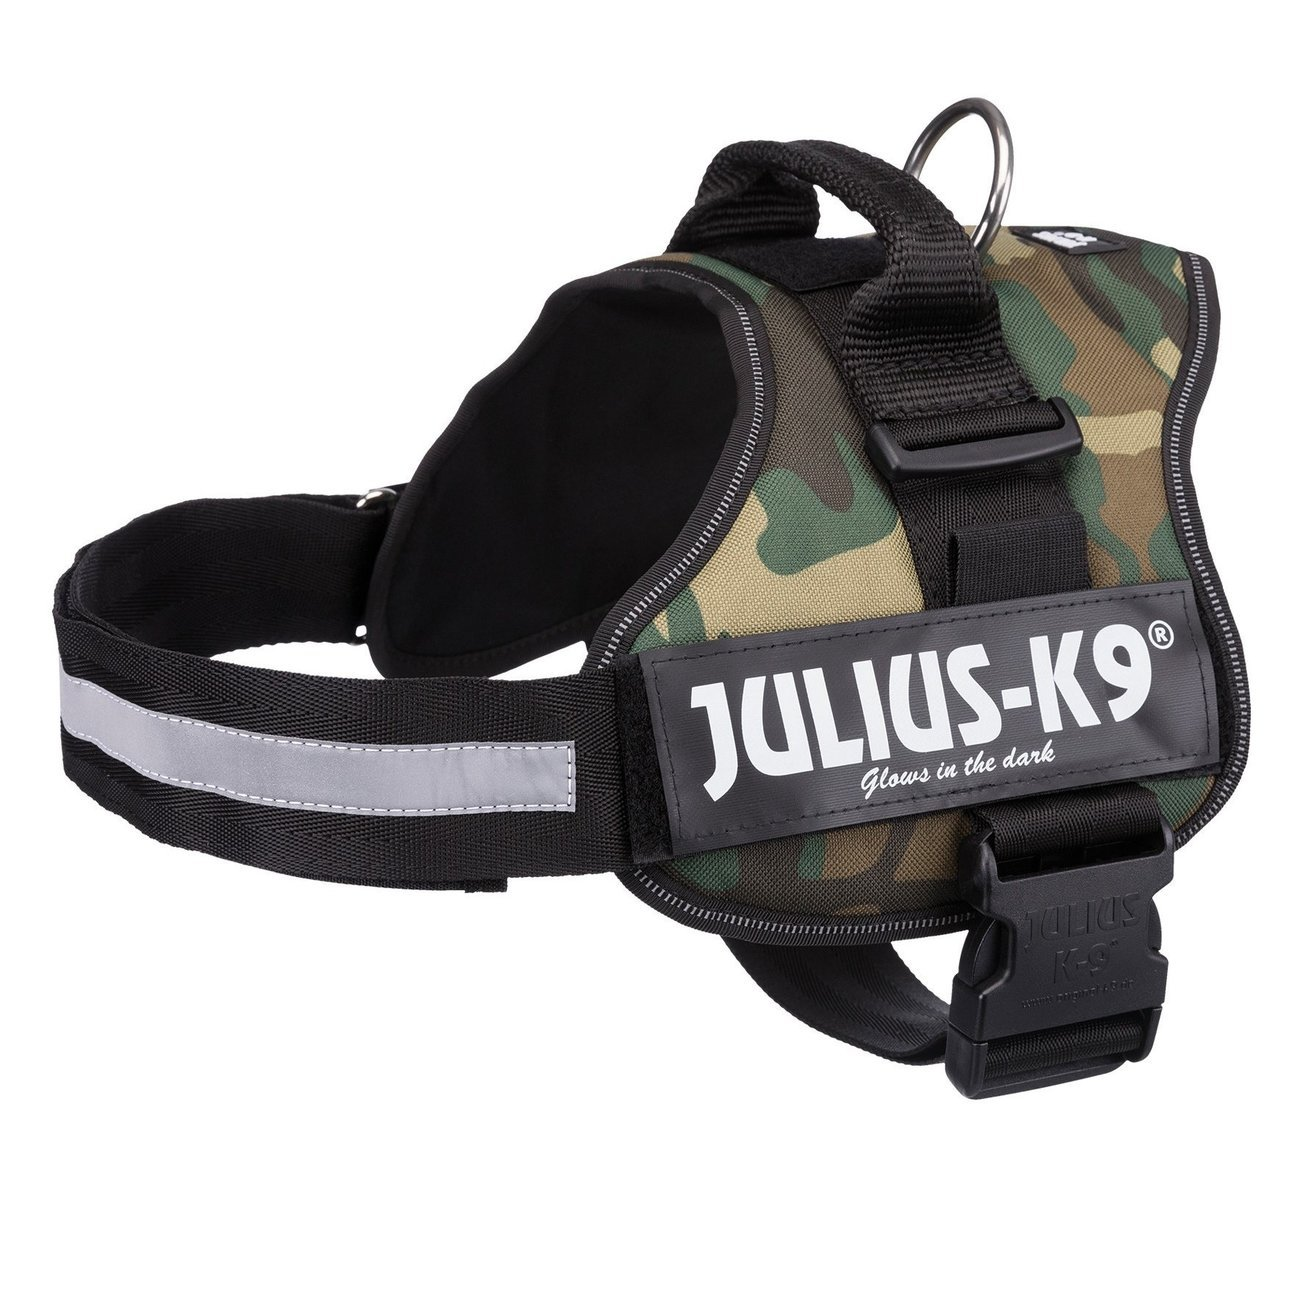 Julius K9 Powergeschirr Hundegeschirr, Mini M: Brust 51-67 cm, camouflage